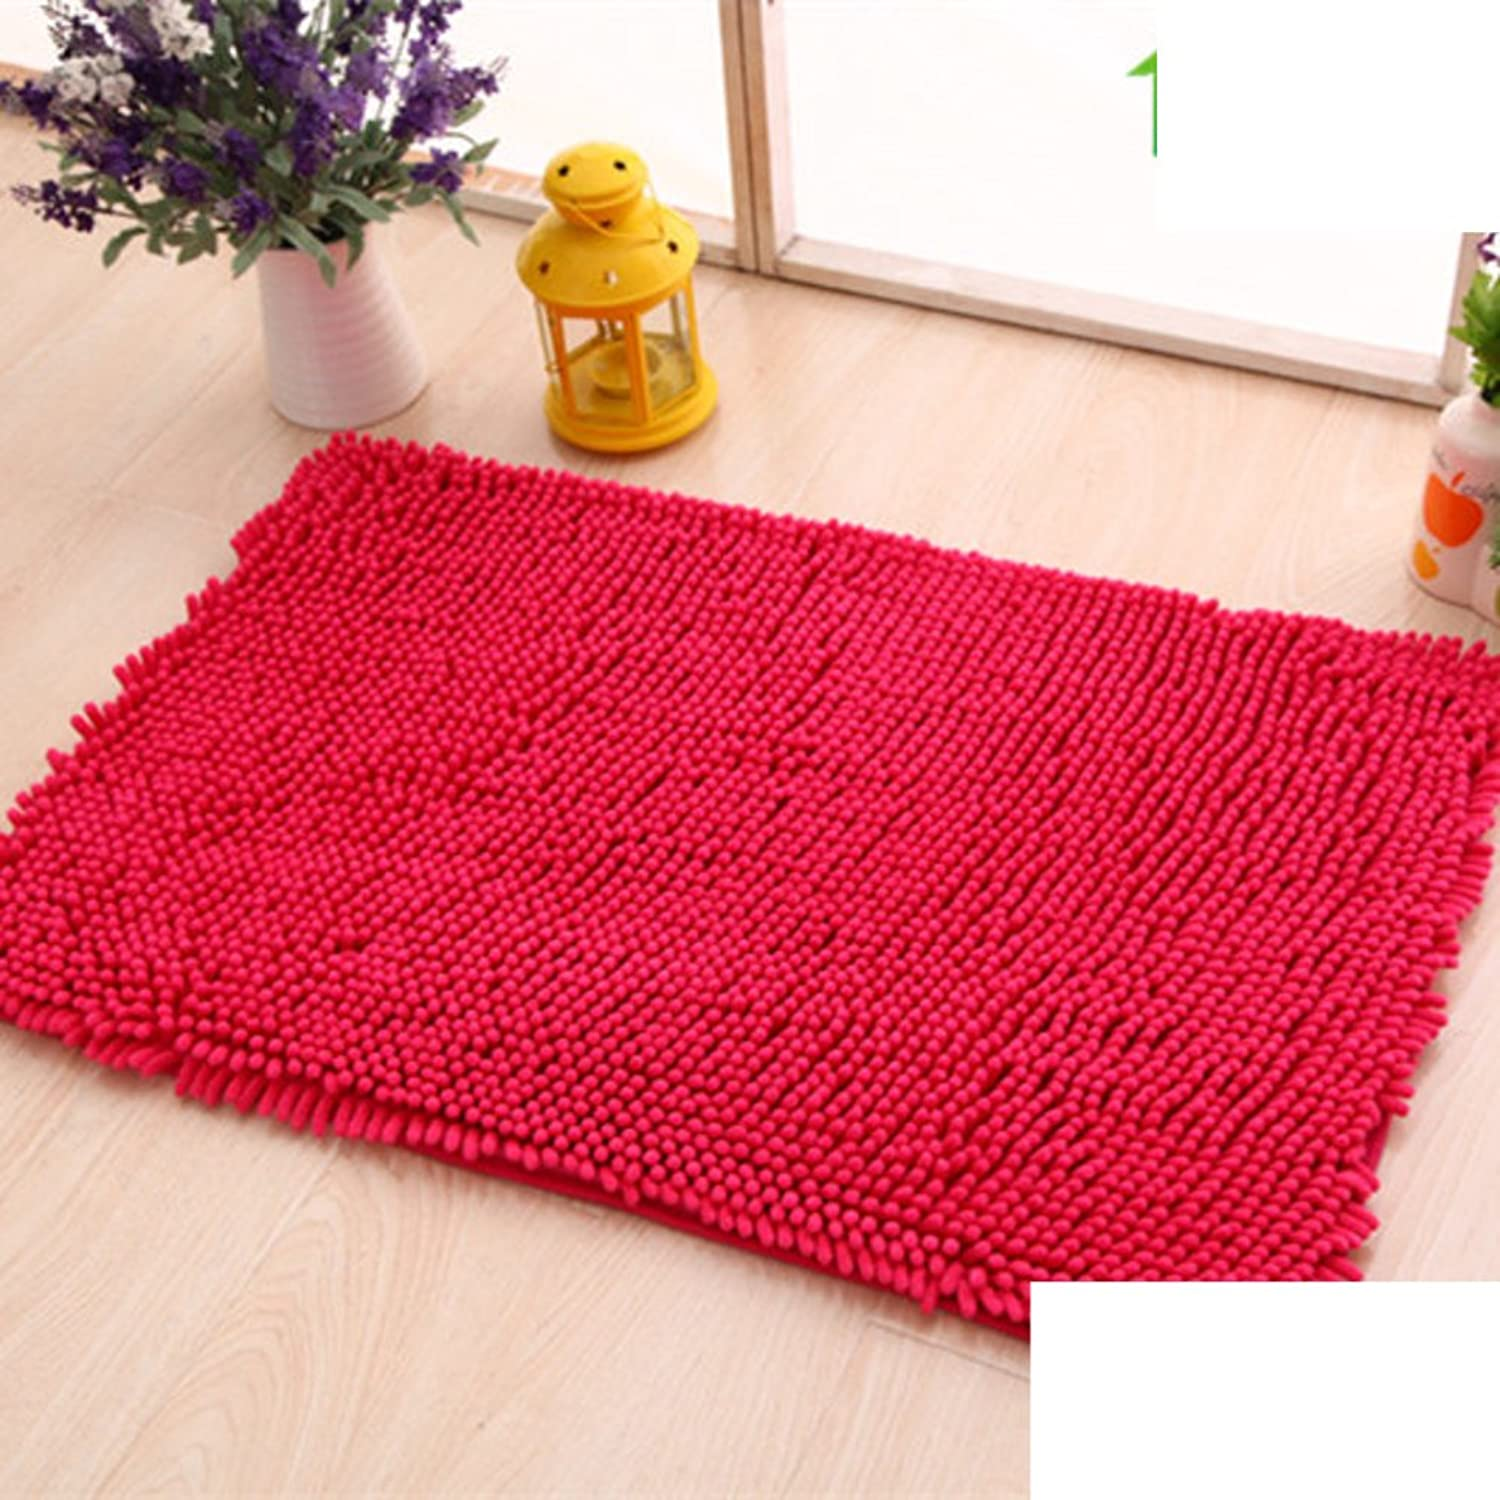 Simple mats Doormat Door [Living Room] Kitchen Floor mats Bathroom Foot Pad Water Absorption and Anti-skidding mat-K 70x140cm(28x55inch)